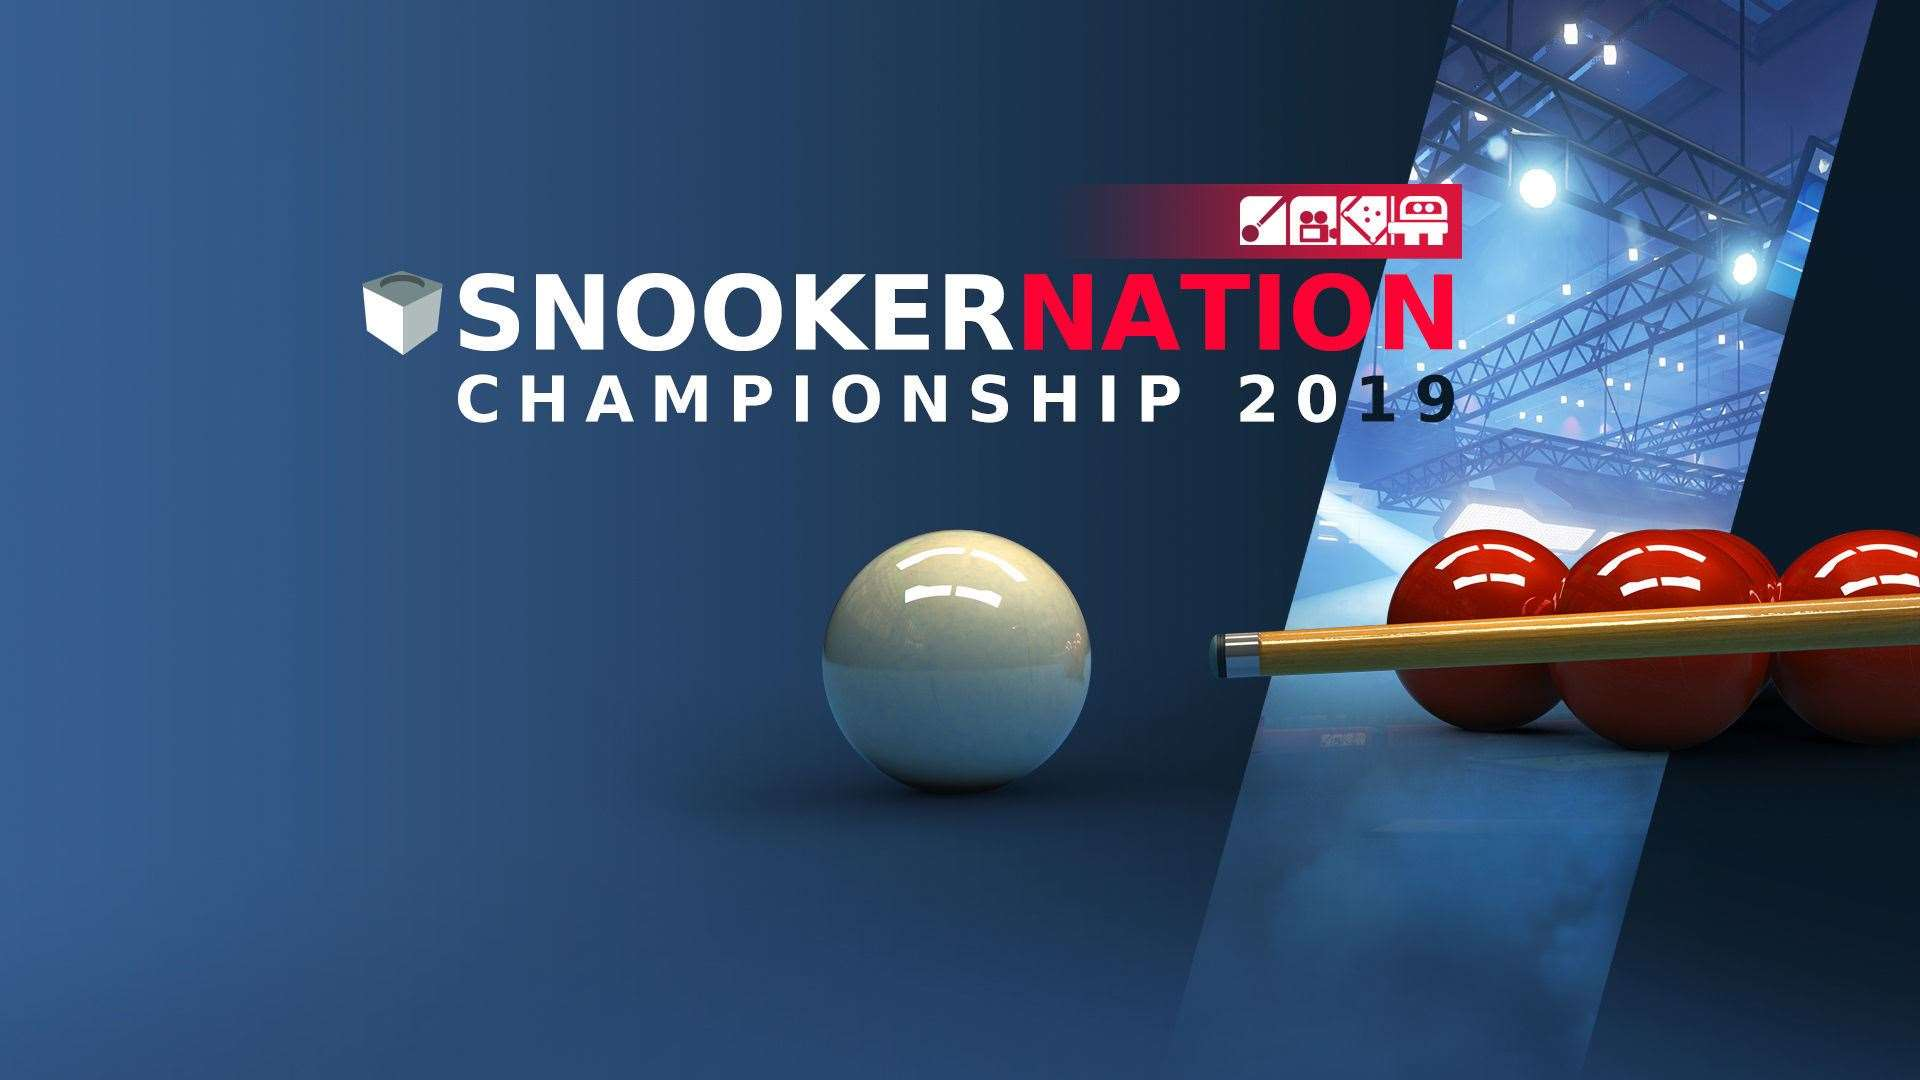 Snooker Nation Championship 2019. Picture: Handout/PA